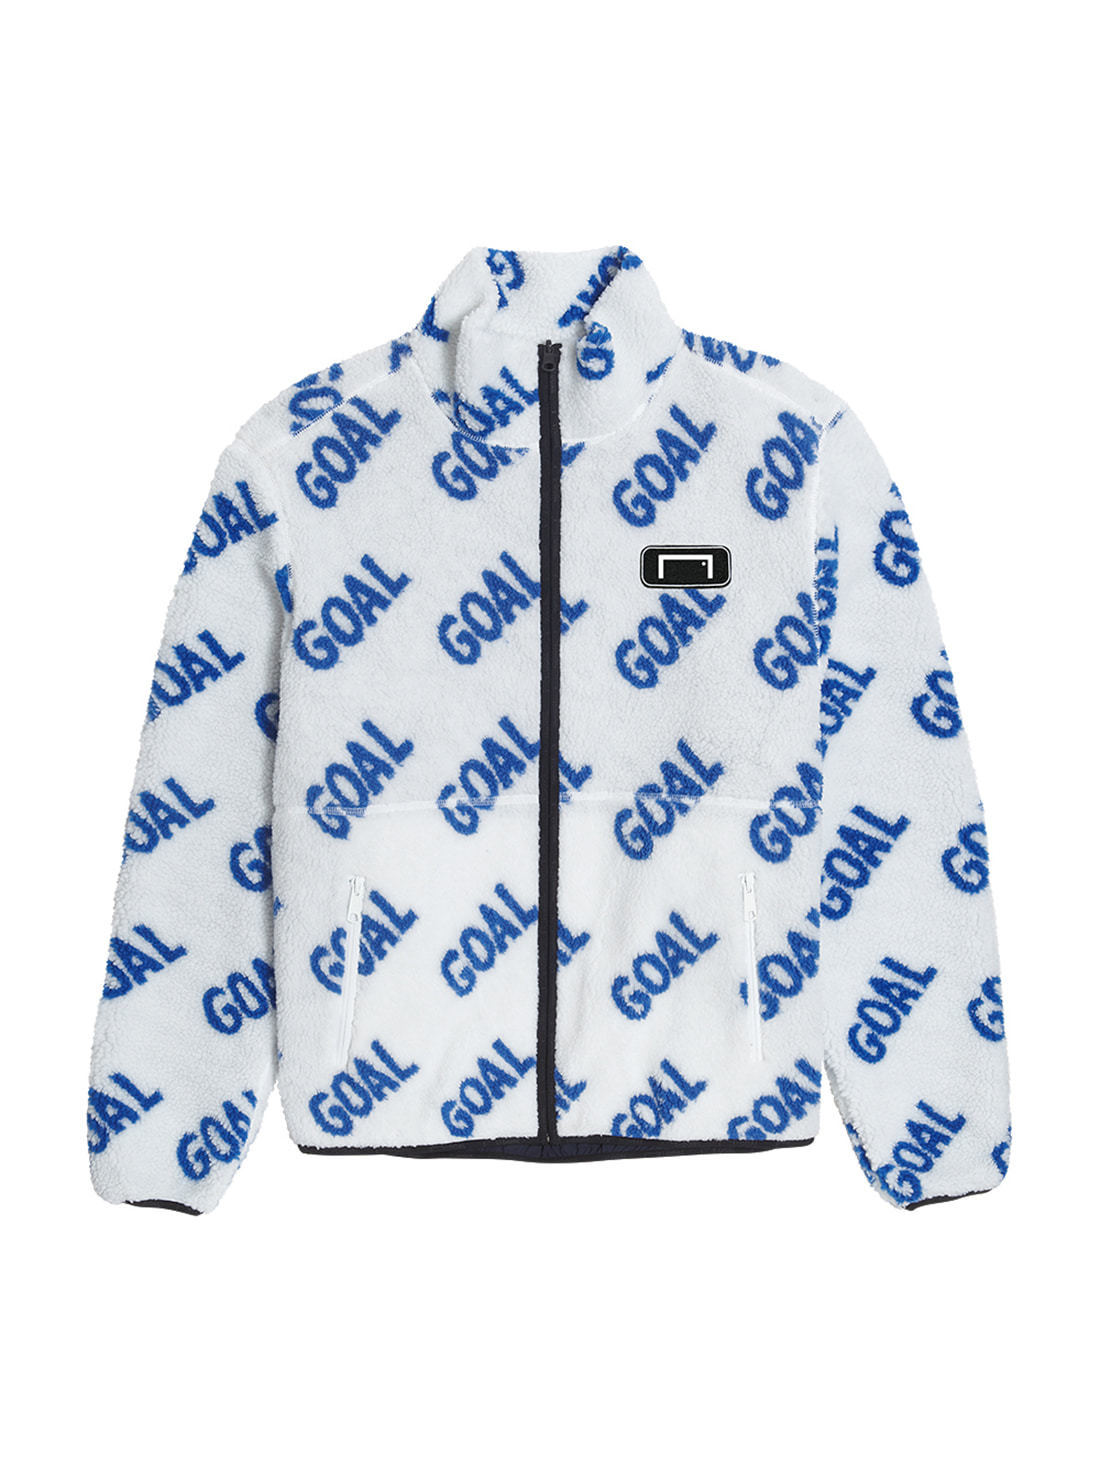 REVERSIBLE FLEECE JACKET - WHITE/NAVY